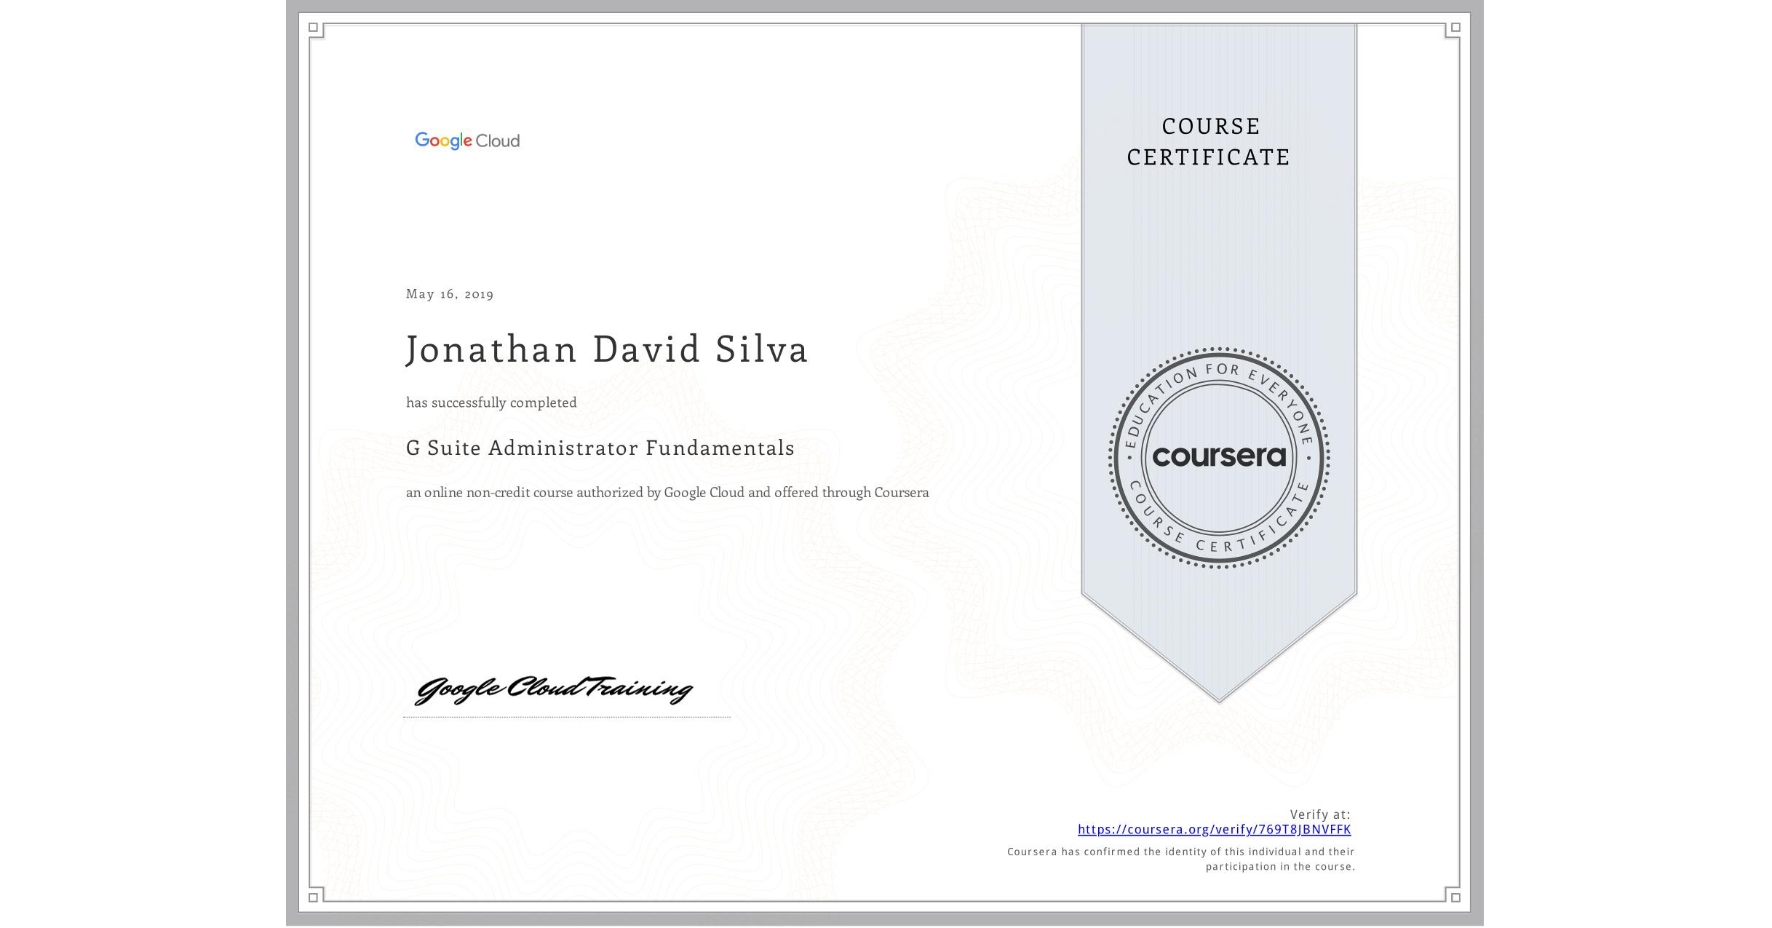 View certificate for Jonathan David Silva, G Suite Administrator Fundamentals, an online non-credit course authorized by Google Cloud and offered through Coursera